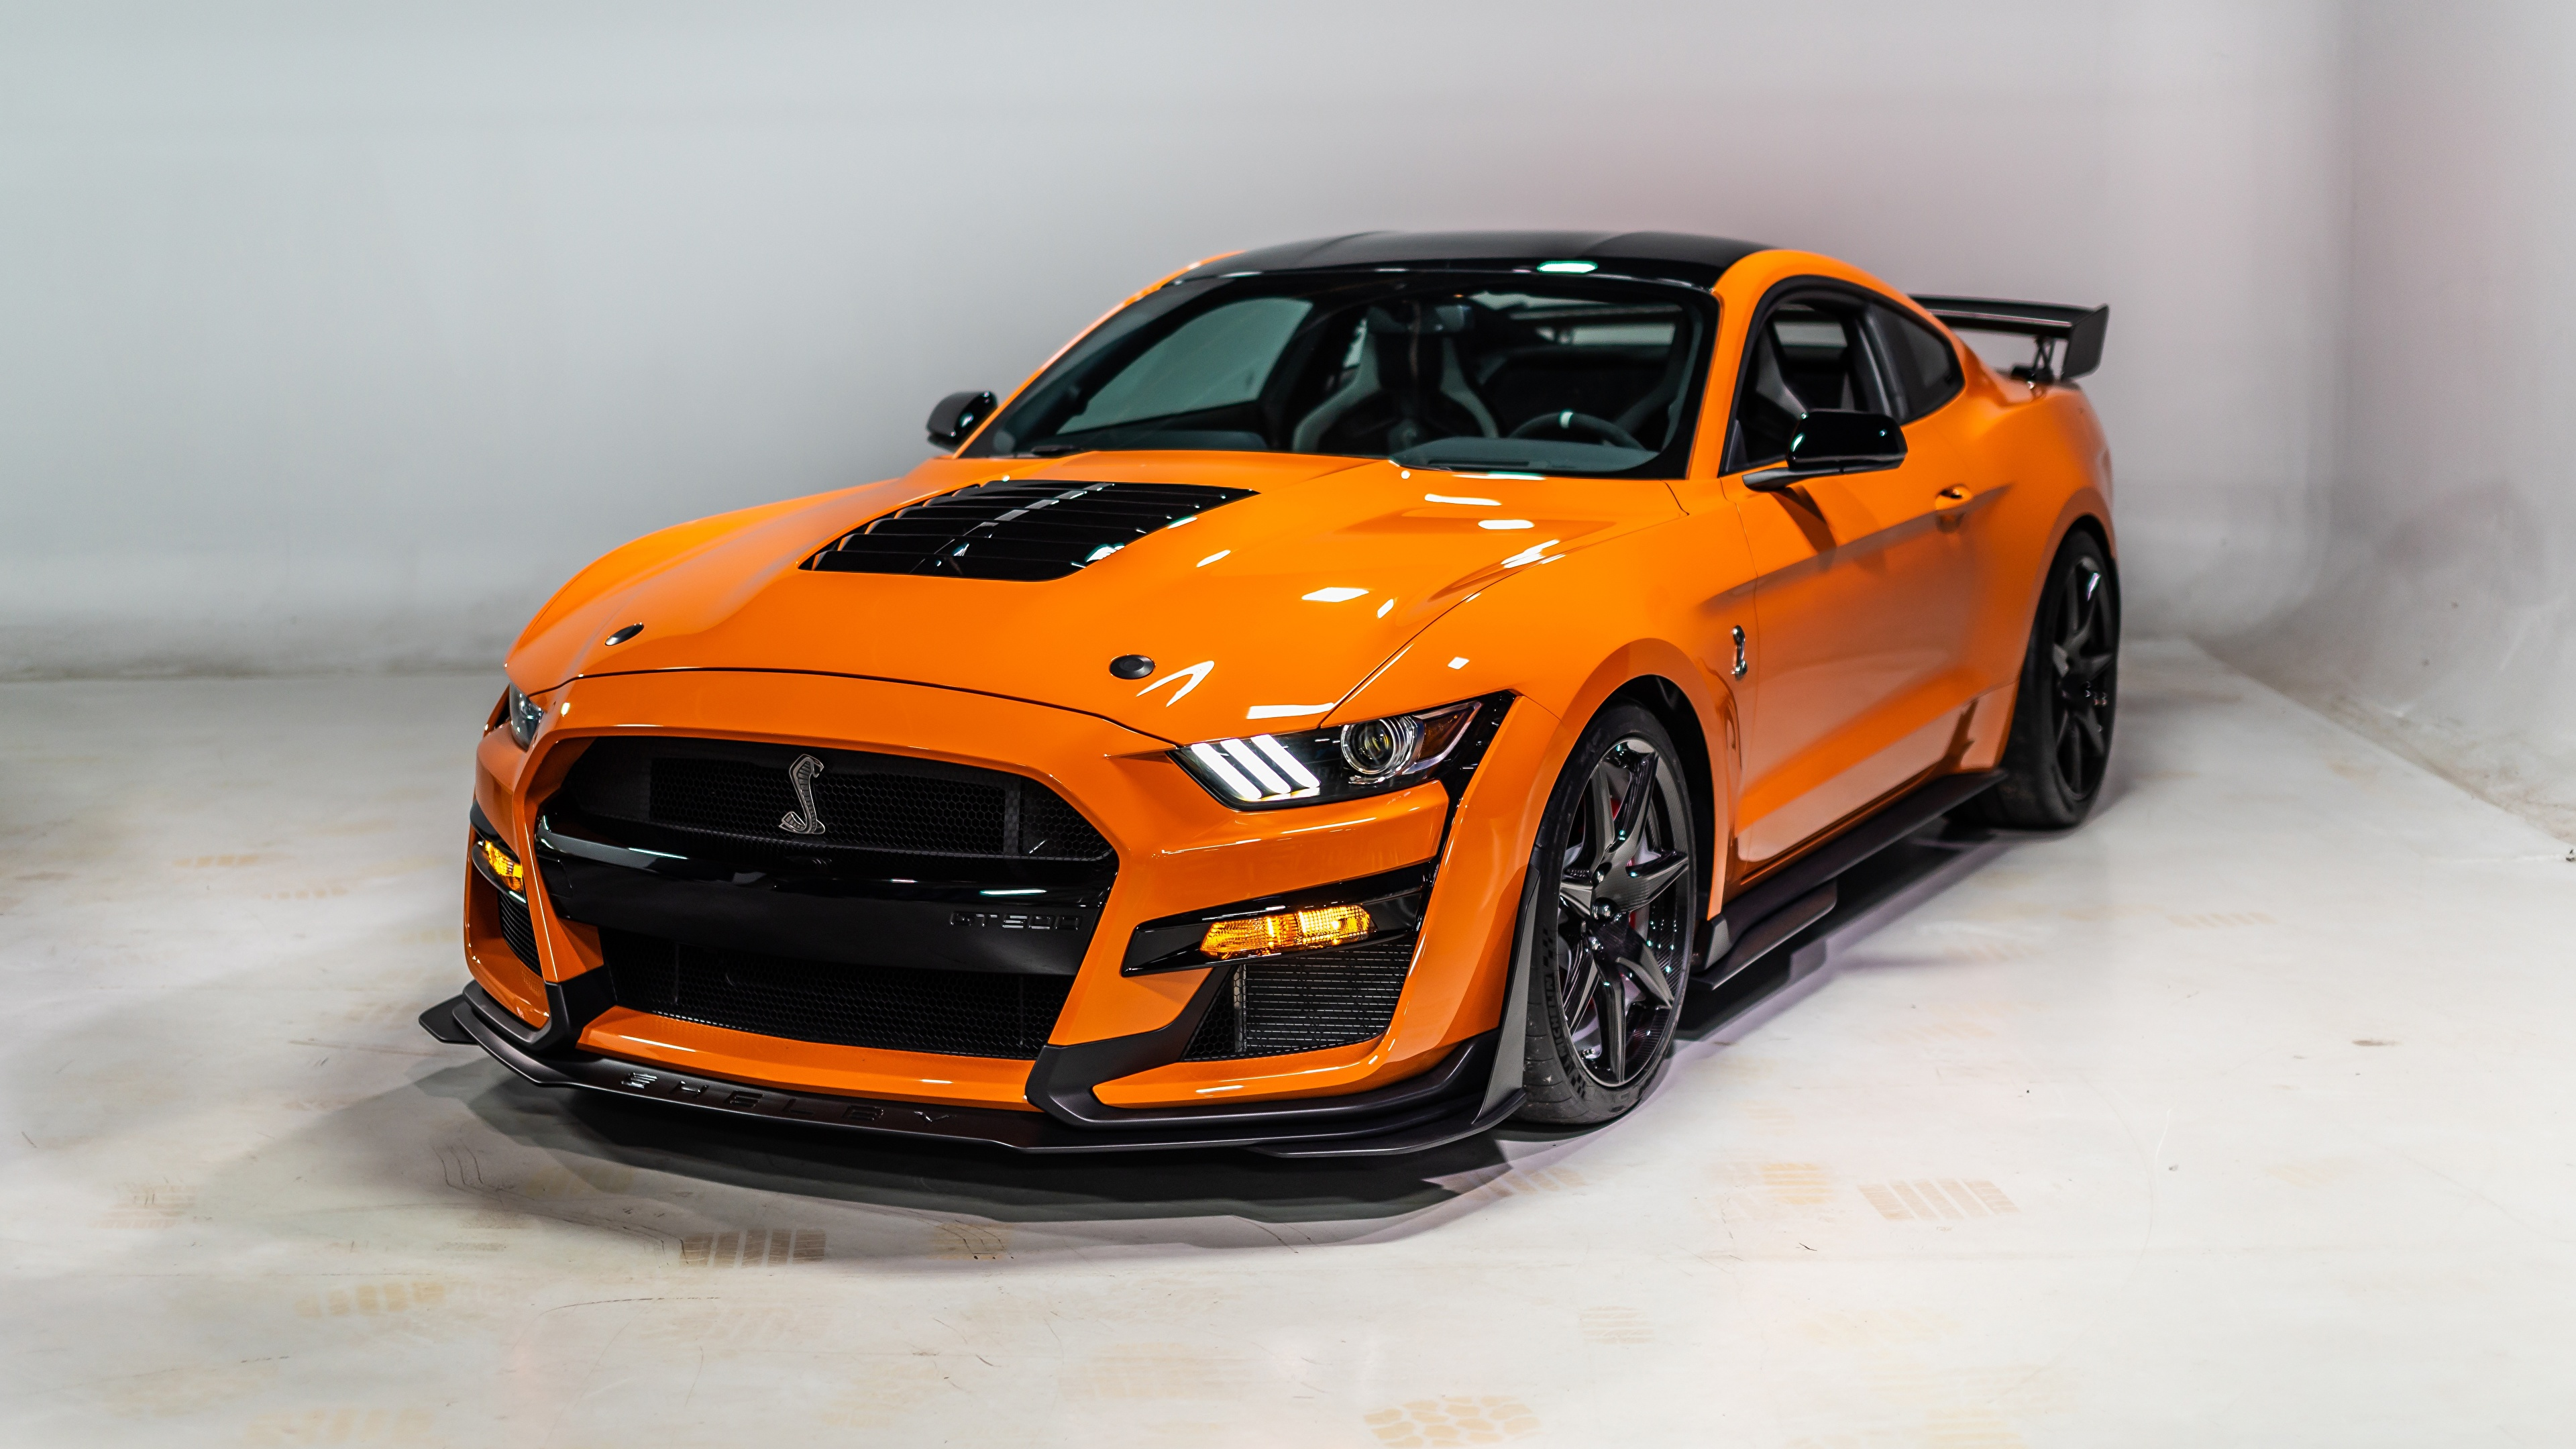 Image Ford Mustang Shelby GT500 2020 Orange Cars Metallic 3840x2160